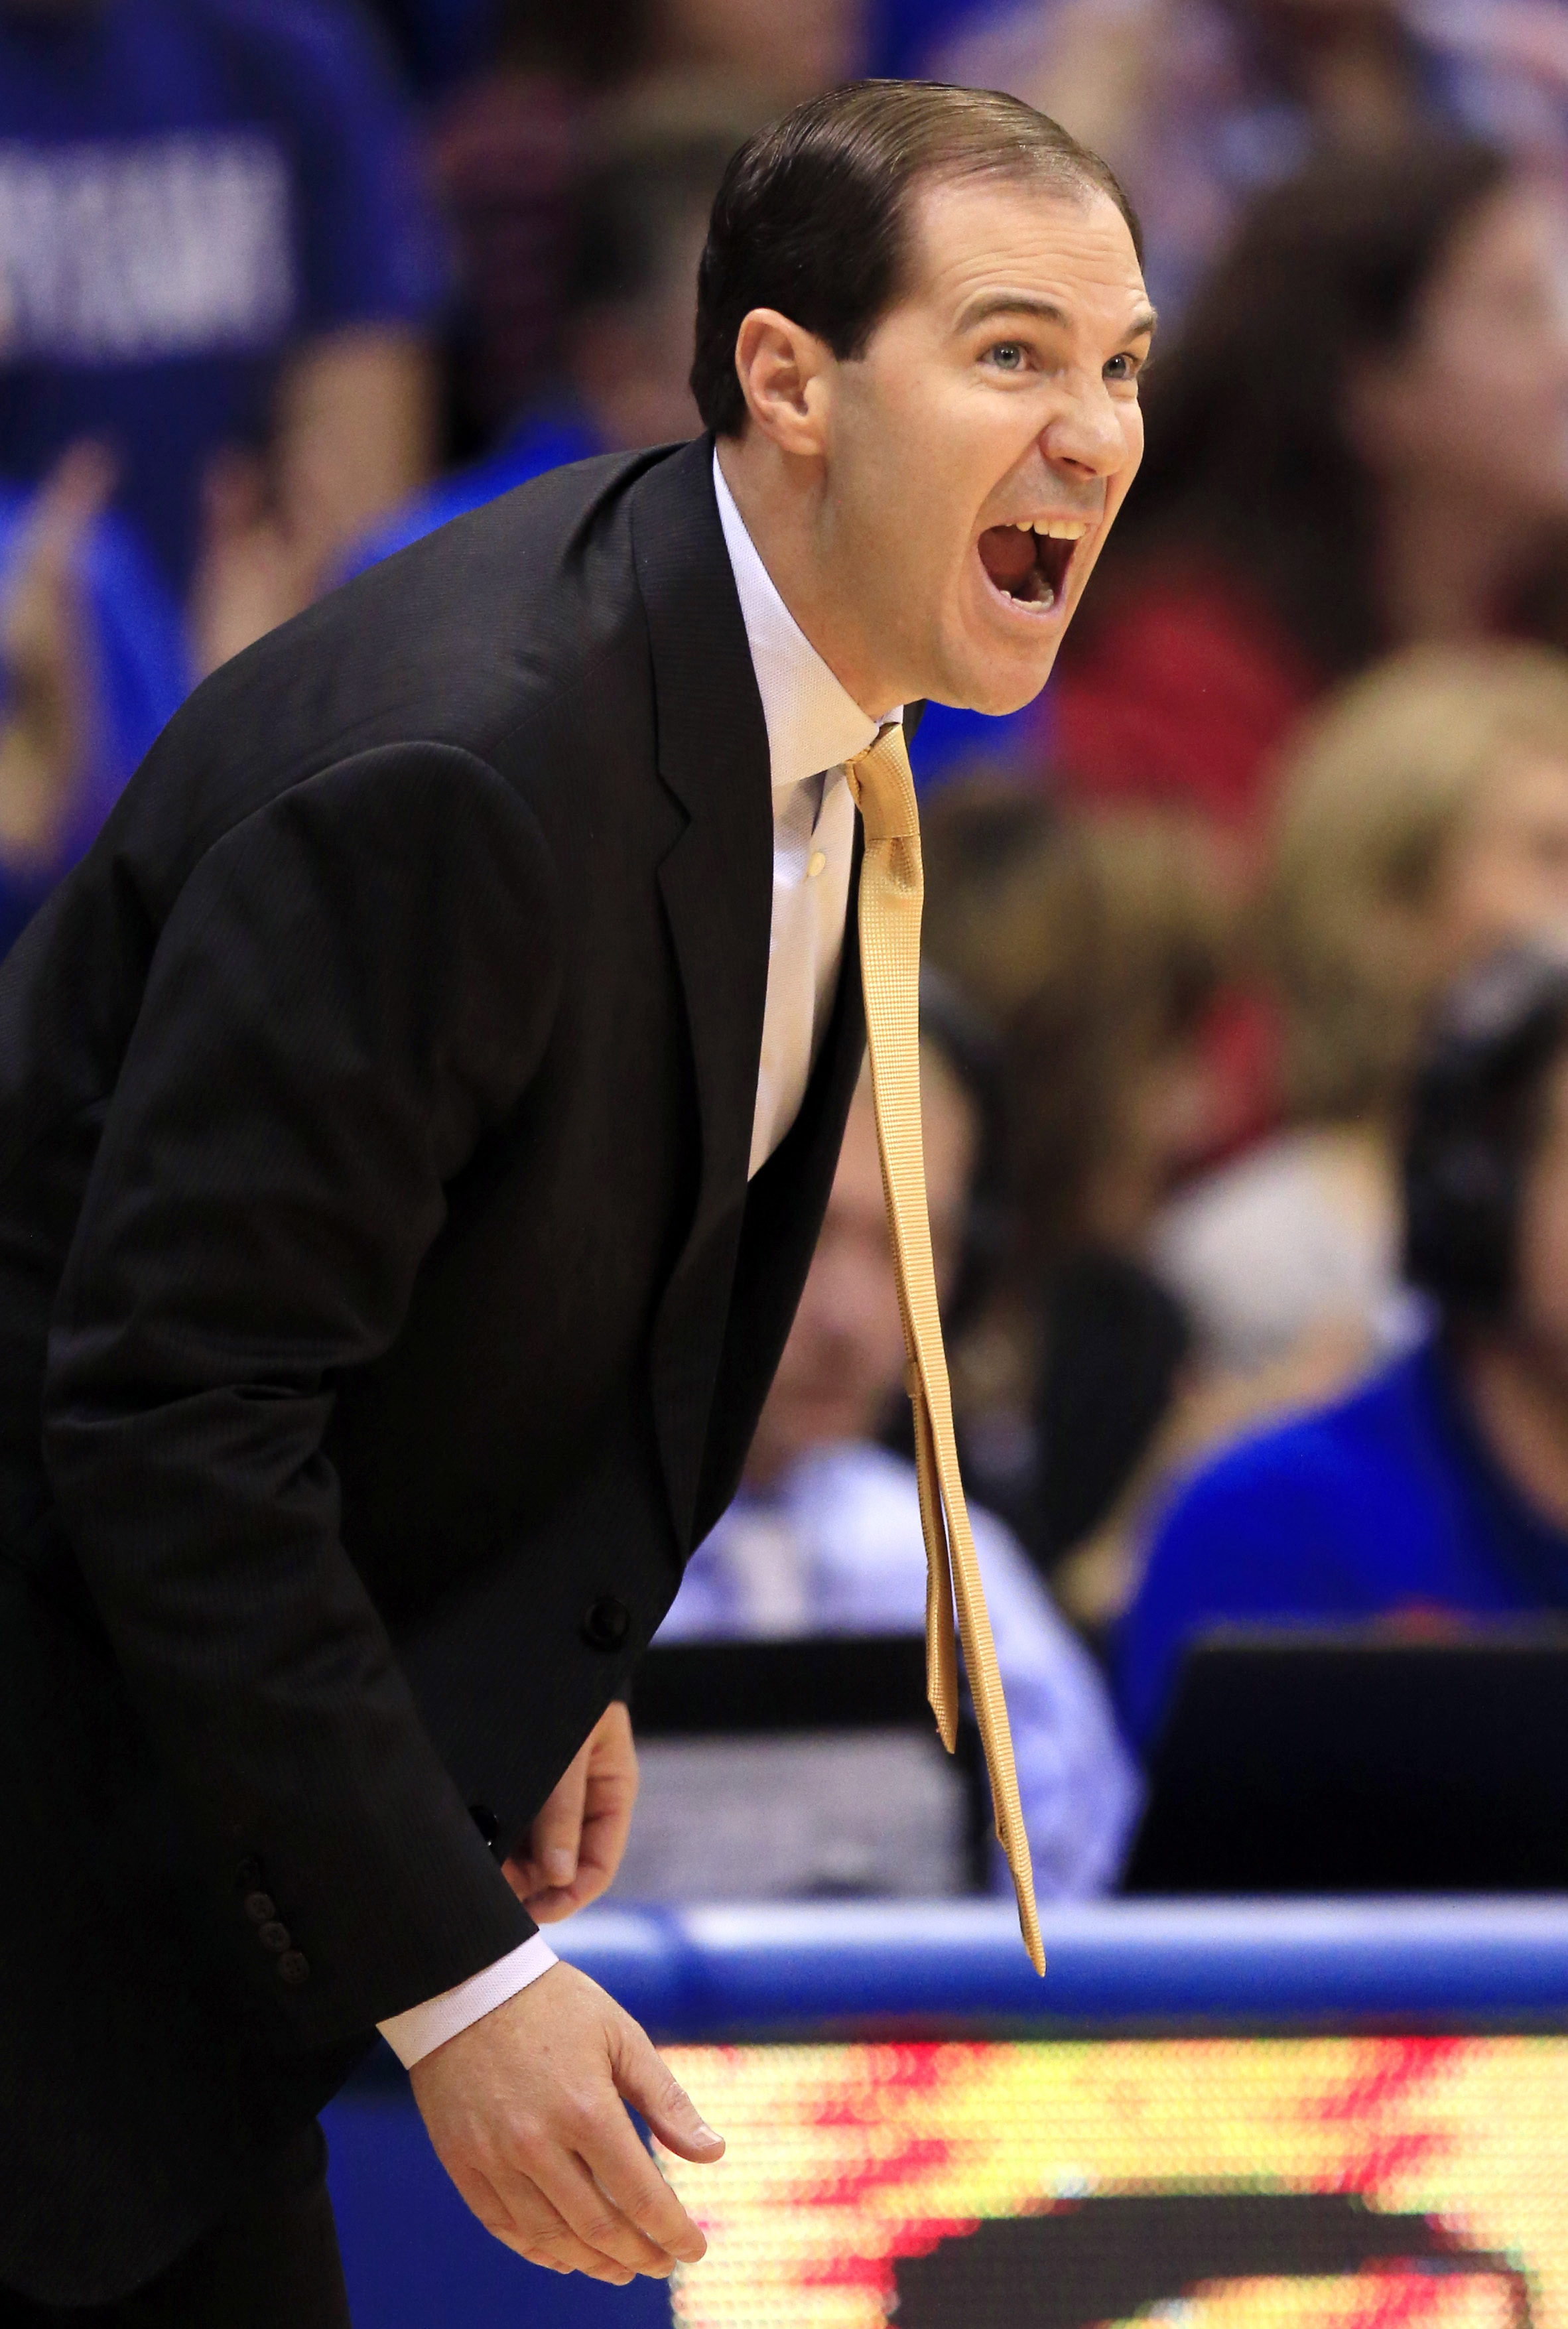 Baylor head coach Scott Drew yells to his team during the first half of an NCAA college basketball game against Kansas in Lawrence, Kan., Saturday, Jan. 2, 2016. (AP Photo/Orlin Wagner)